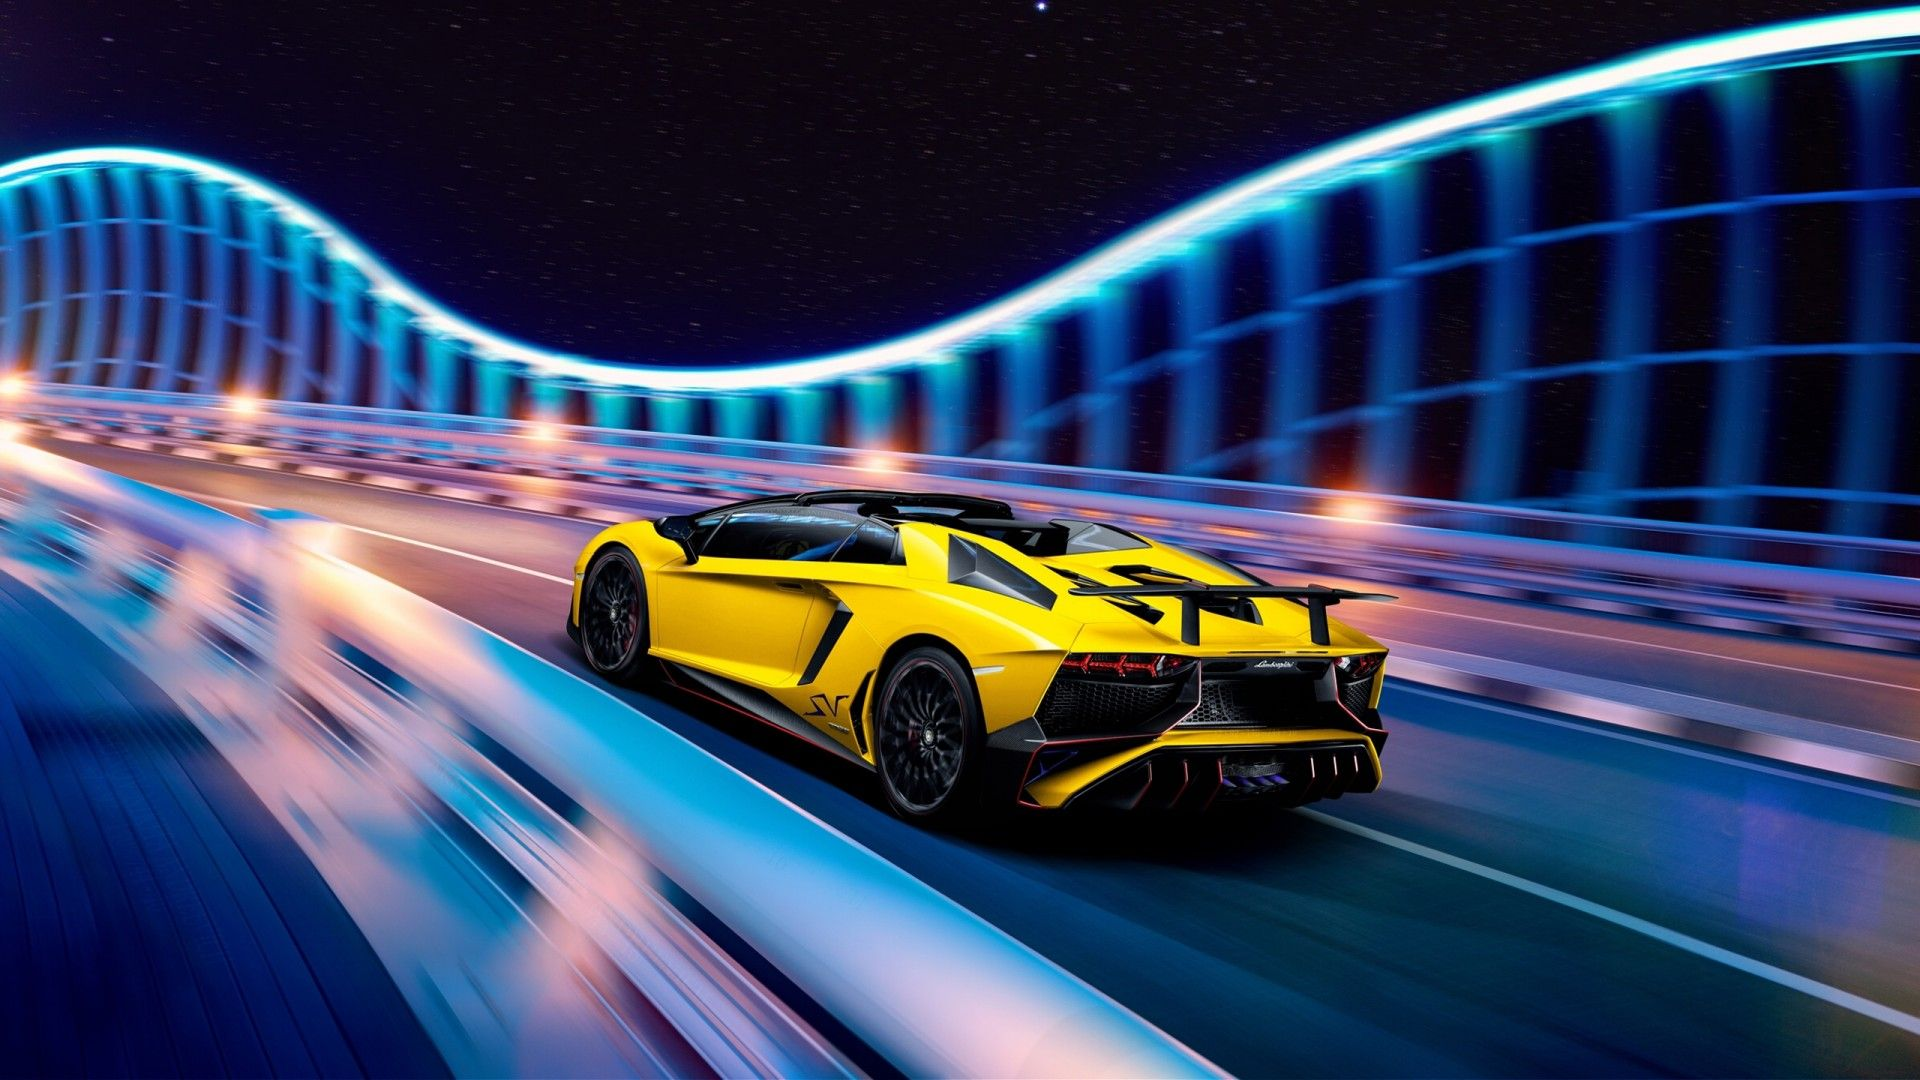 Lamborghini Aventador Lp750 4 Superveloce Roadster Wallpaper